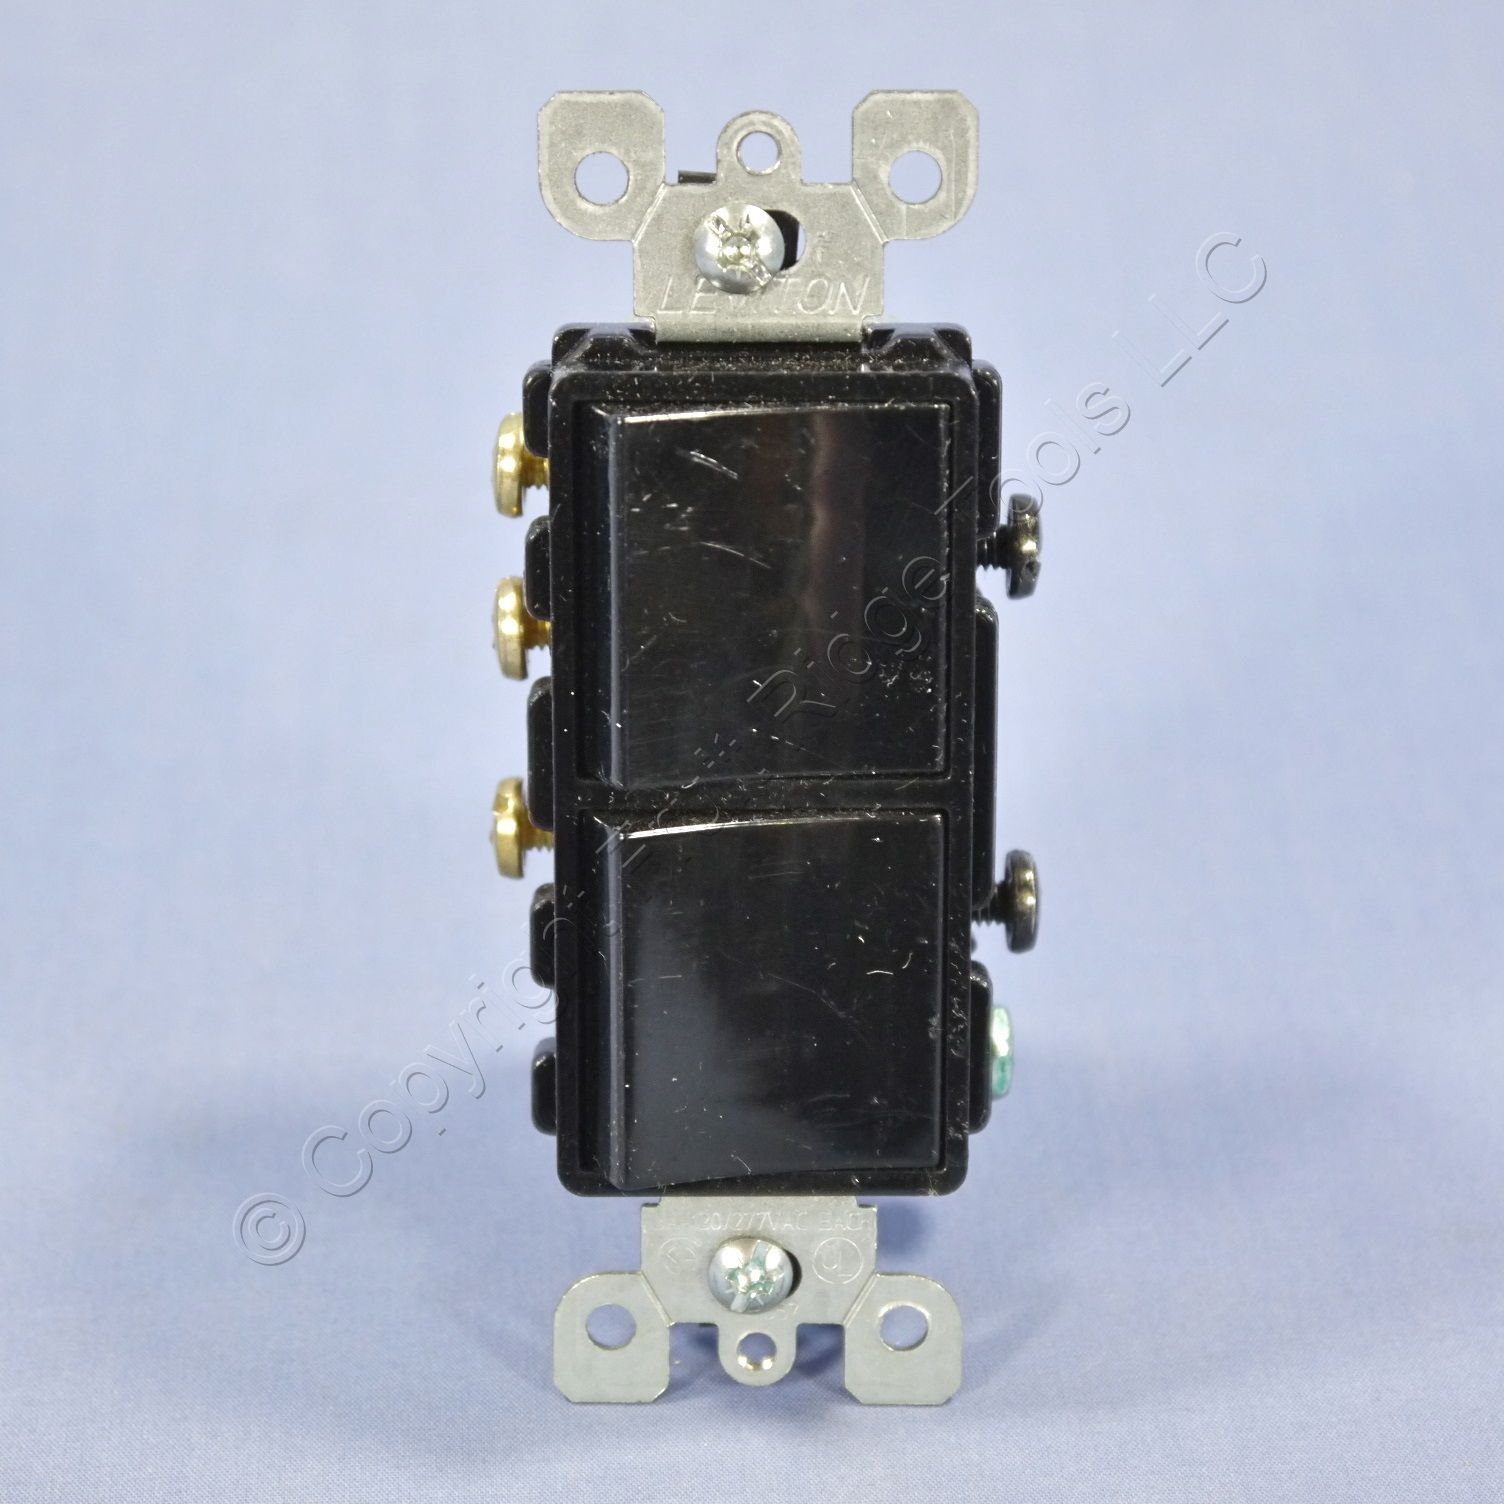 Leviton SCRATCHED Black Decora SP/3-Way DOUBLE Light Rocker Switch ...